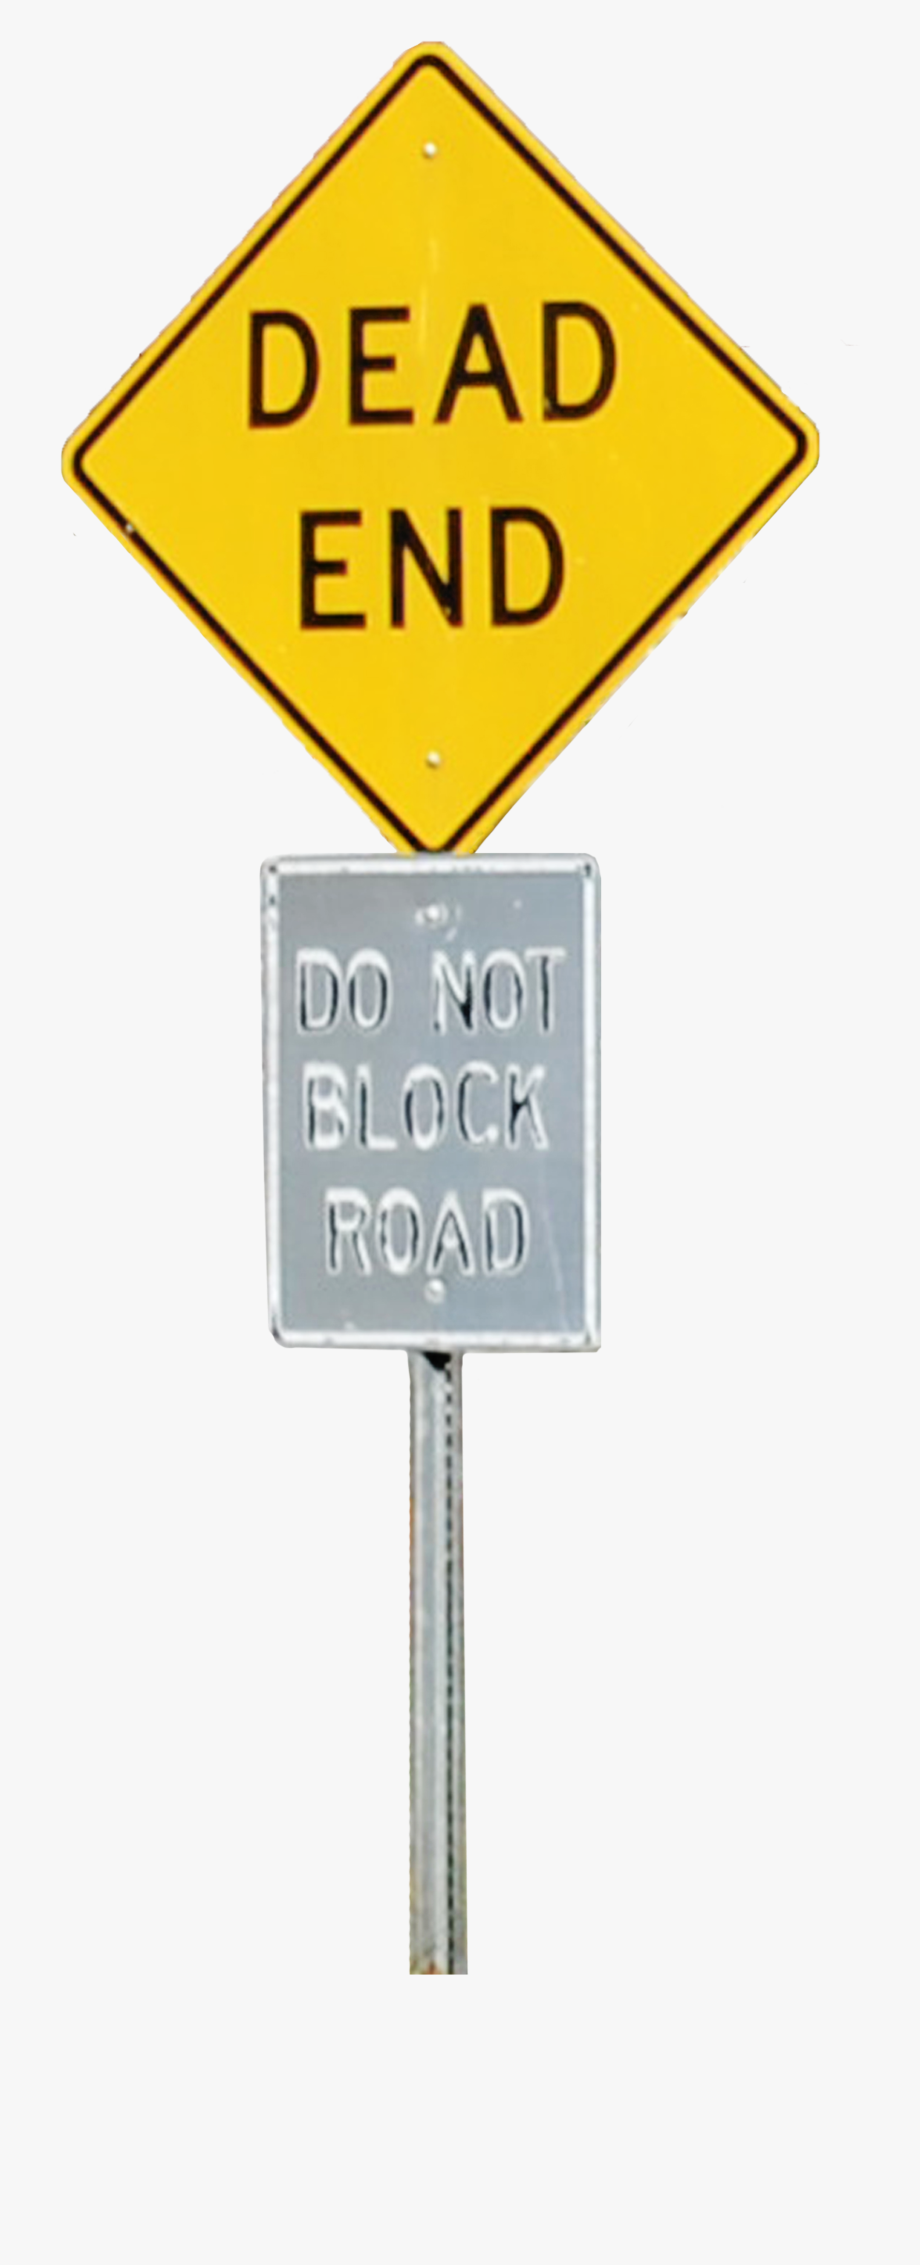 Dead End Sign Png , Transparent Cartoon, Free Cliparts.